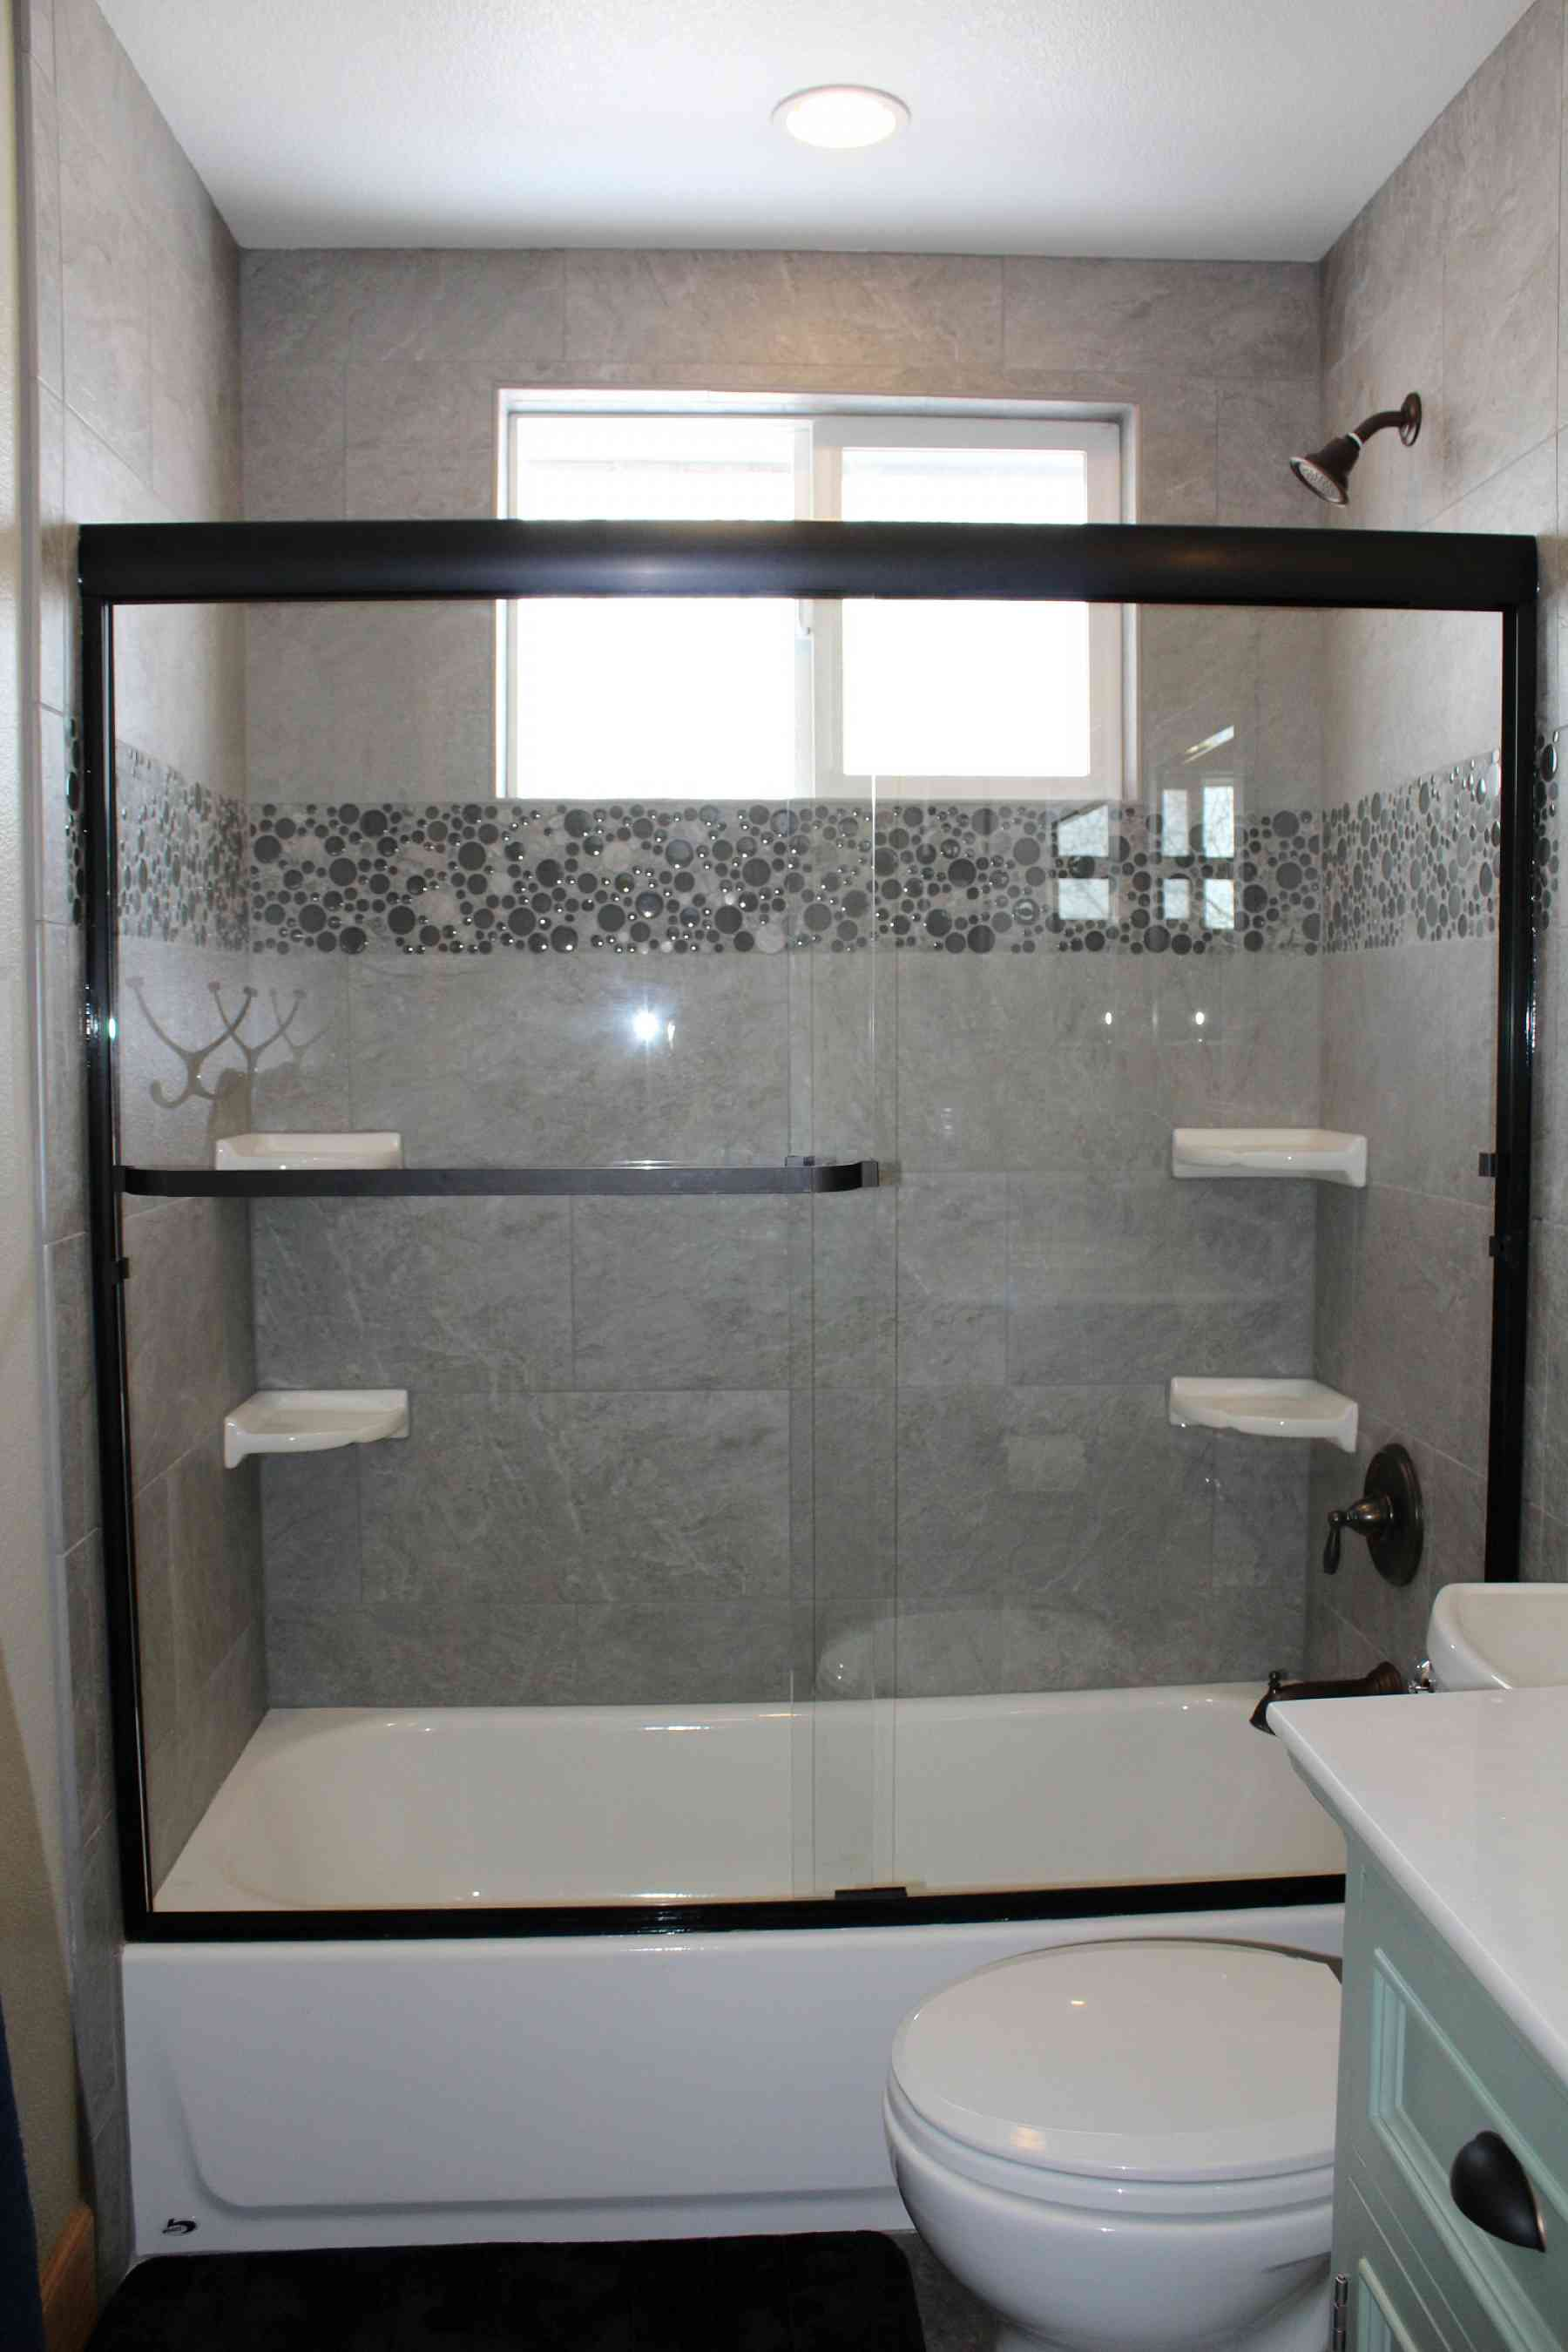 Beautiful new shower tile and sliding glass door!